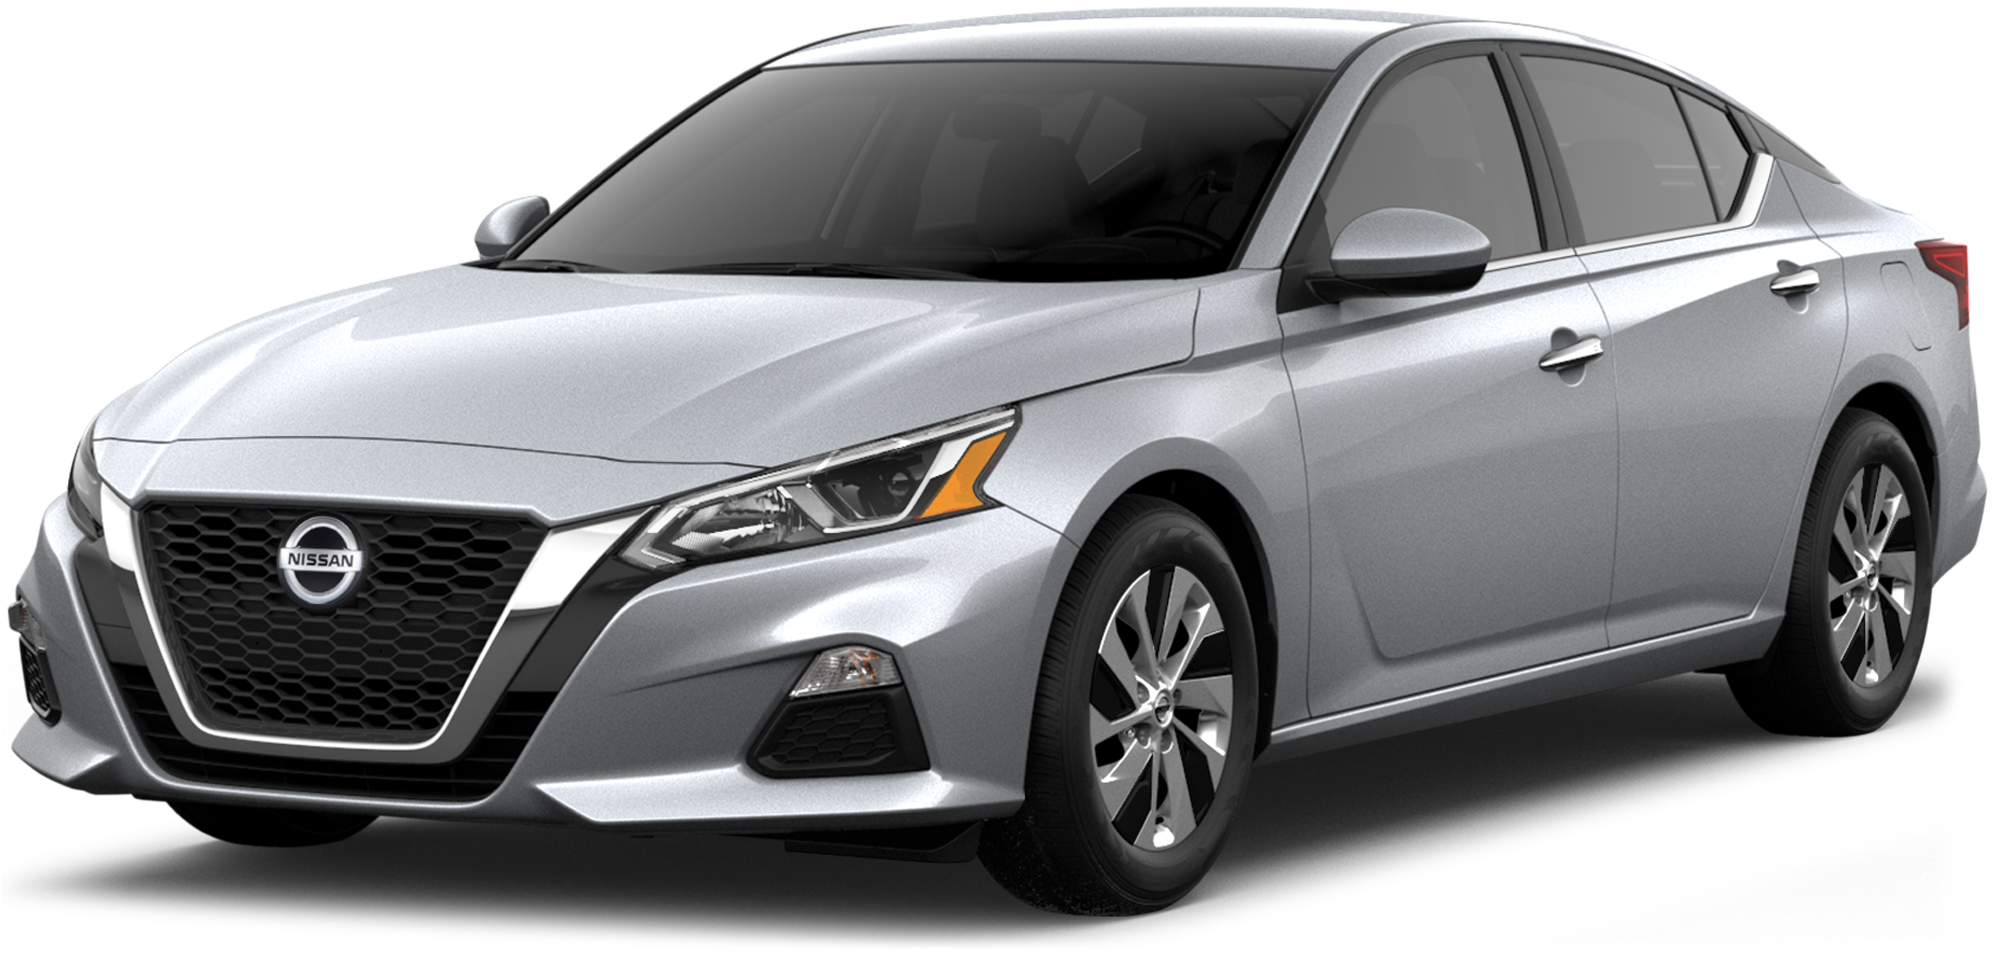 2019 Nissan Altima Incentives, Specials & Offers in Milford CT